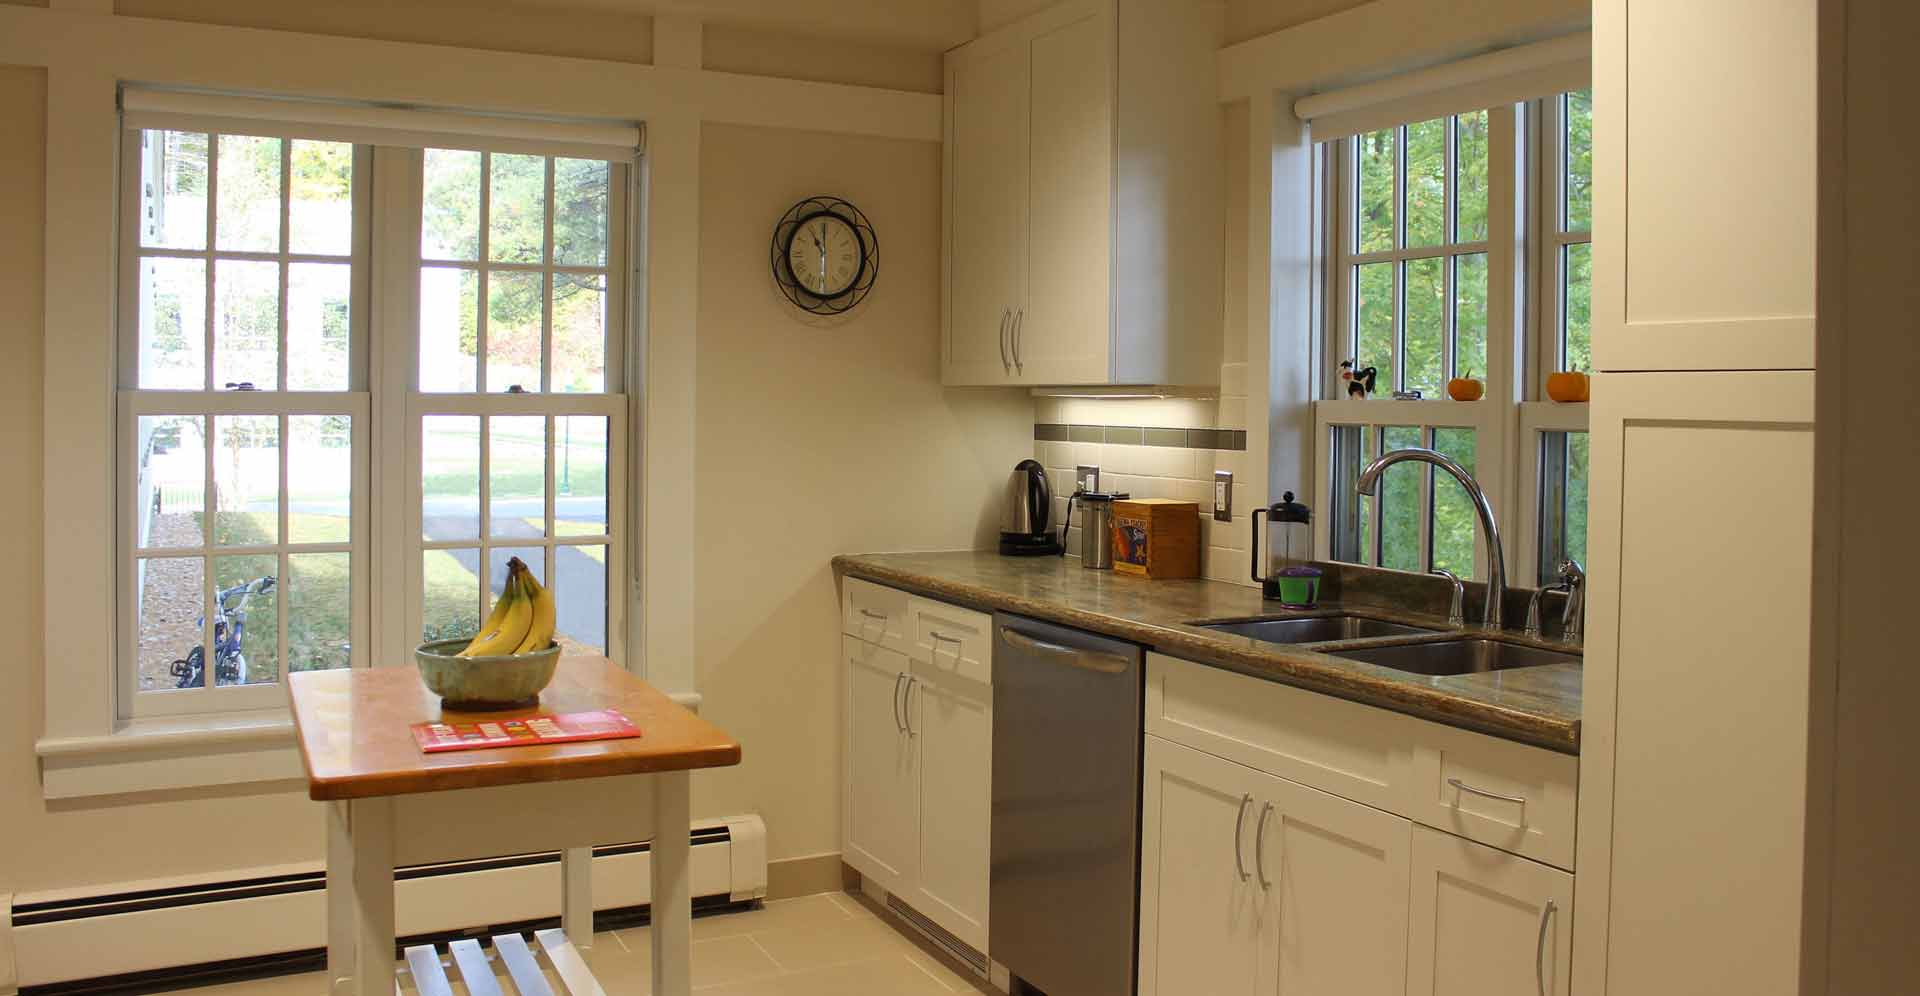 BUCK-DORM-STAFF-RESIDENCE-KITCHEN-DIAGONAL.jpg